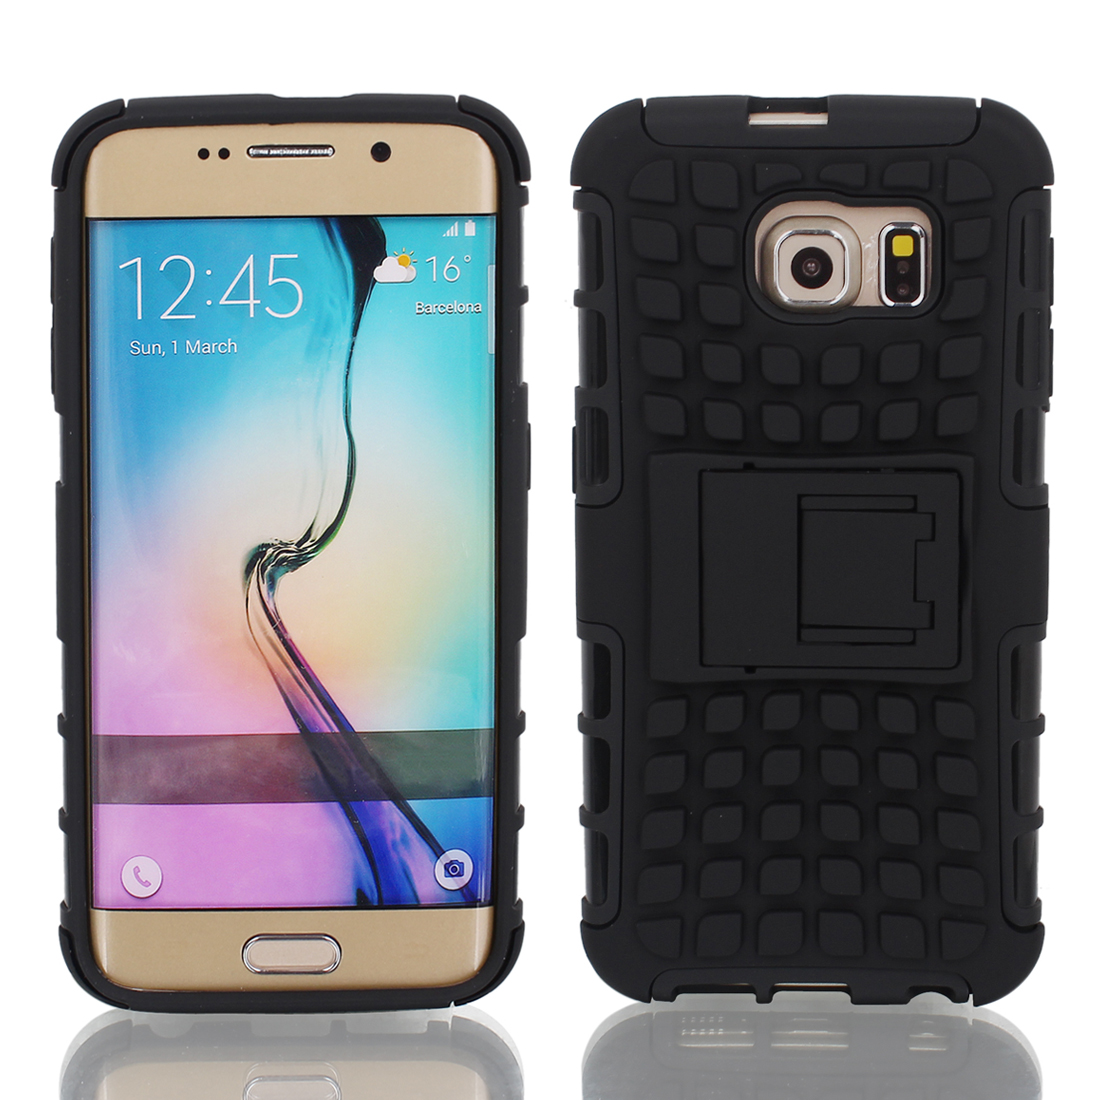 Shockproof Tough Rugged Hard Stand Case Cover Black + Film for G9200 Galaxy S6